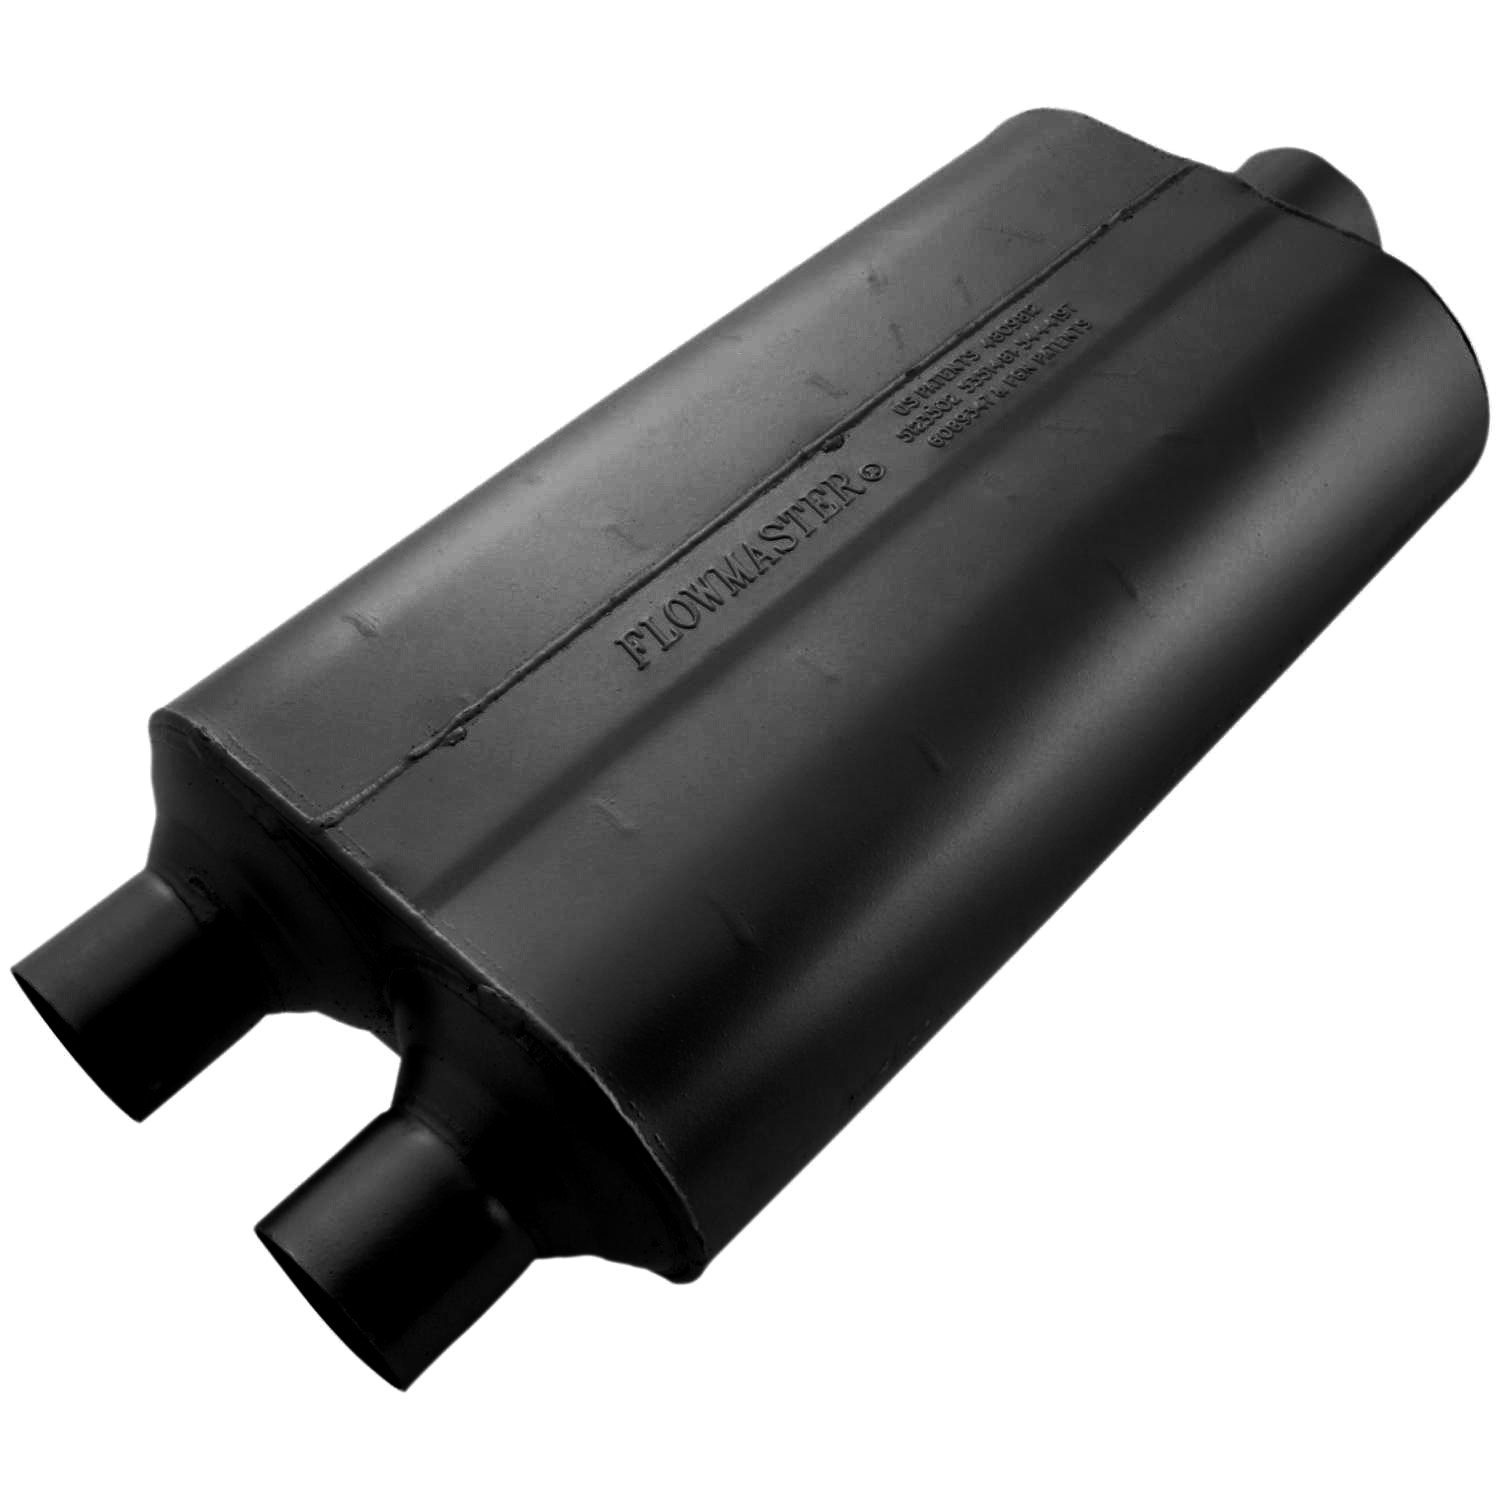 Flowmaster 8524553 Super 50 Muffler 409S - 2.25 Dual IN / 3.00 Center OUT - Moderate Sound by Flowmaster